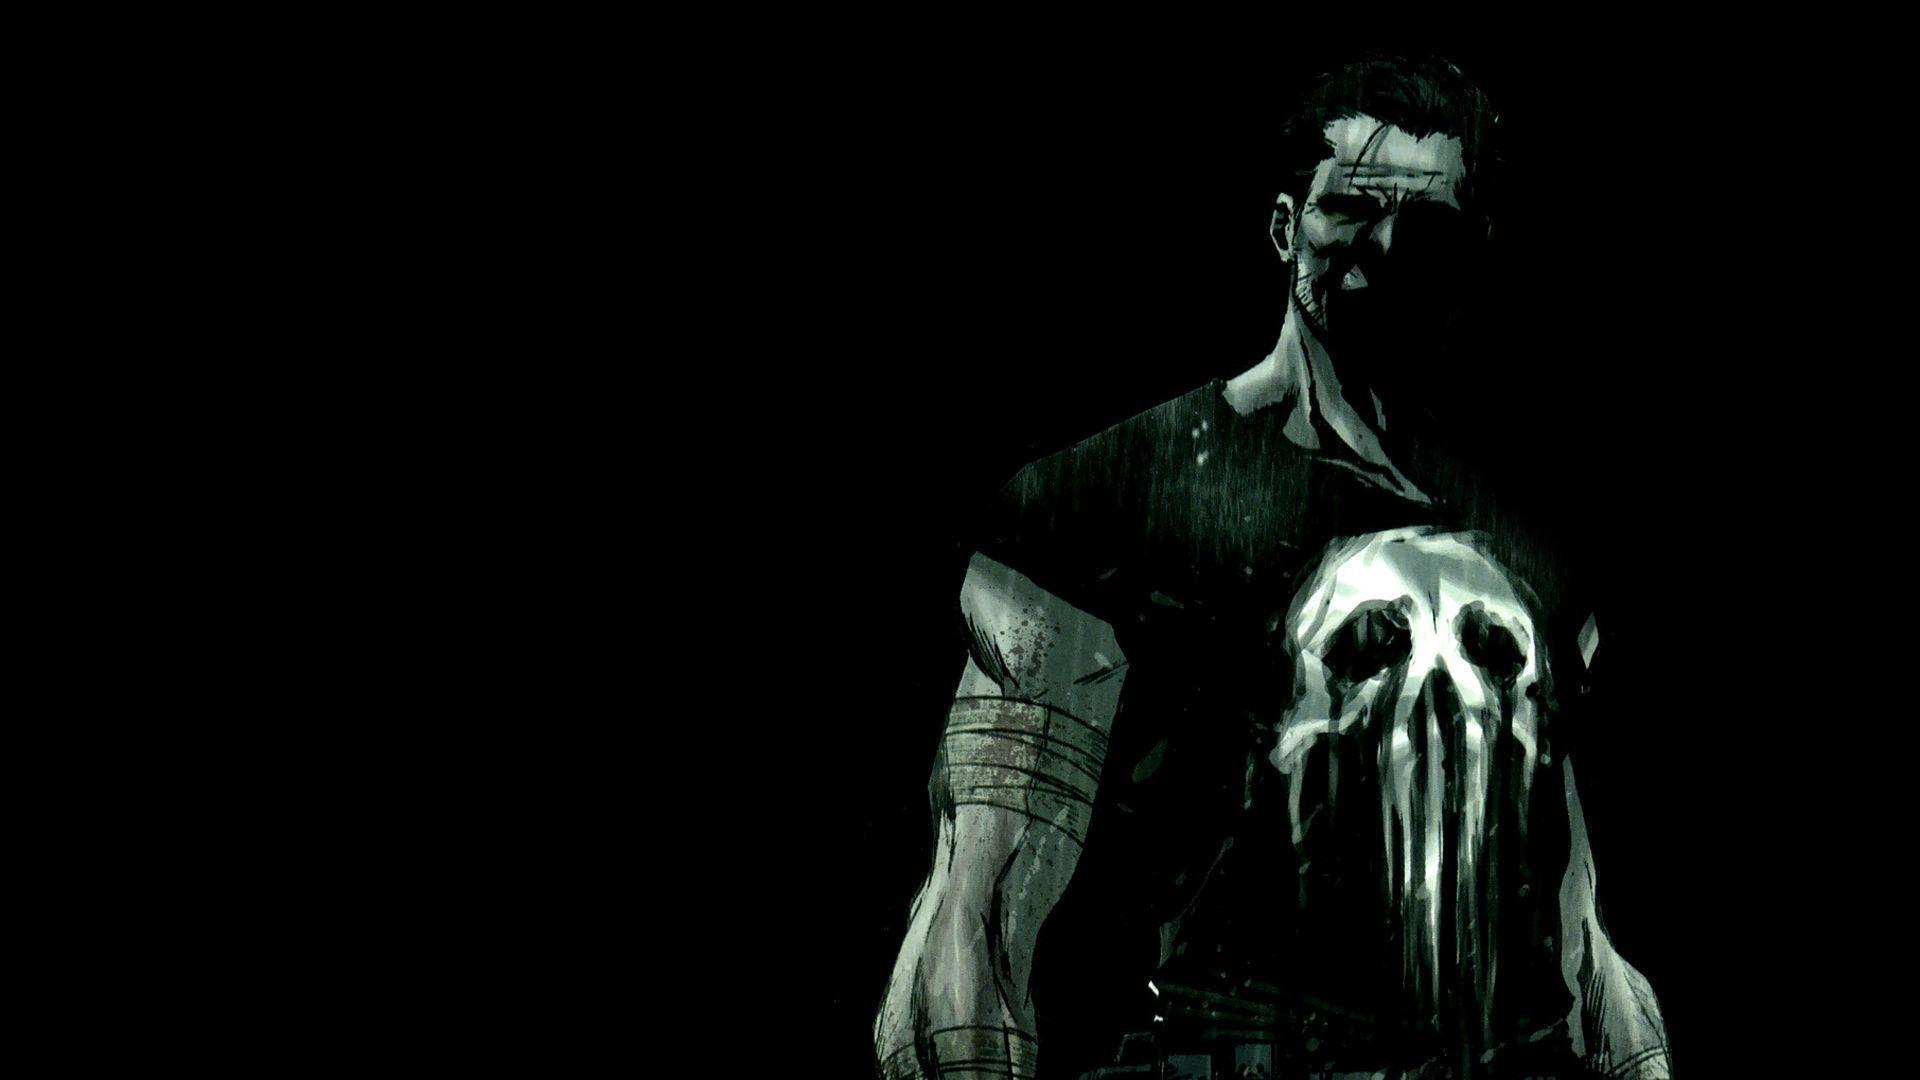 punisher logo wallpapers - photo #32